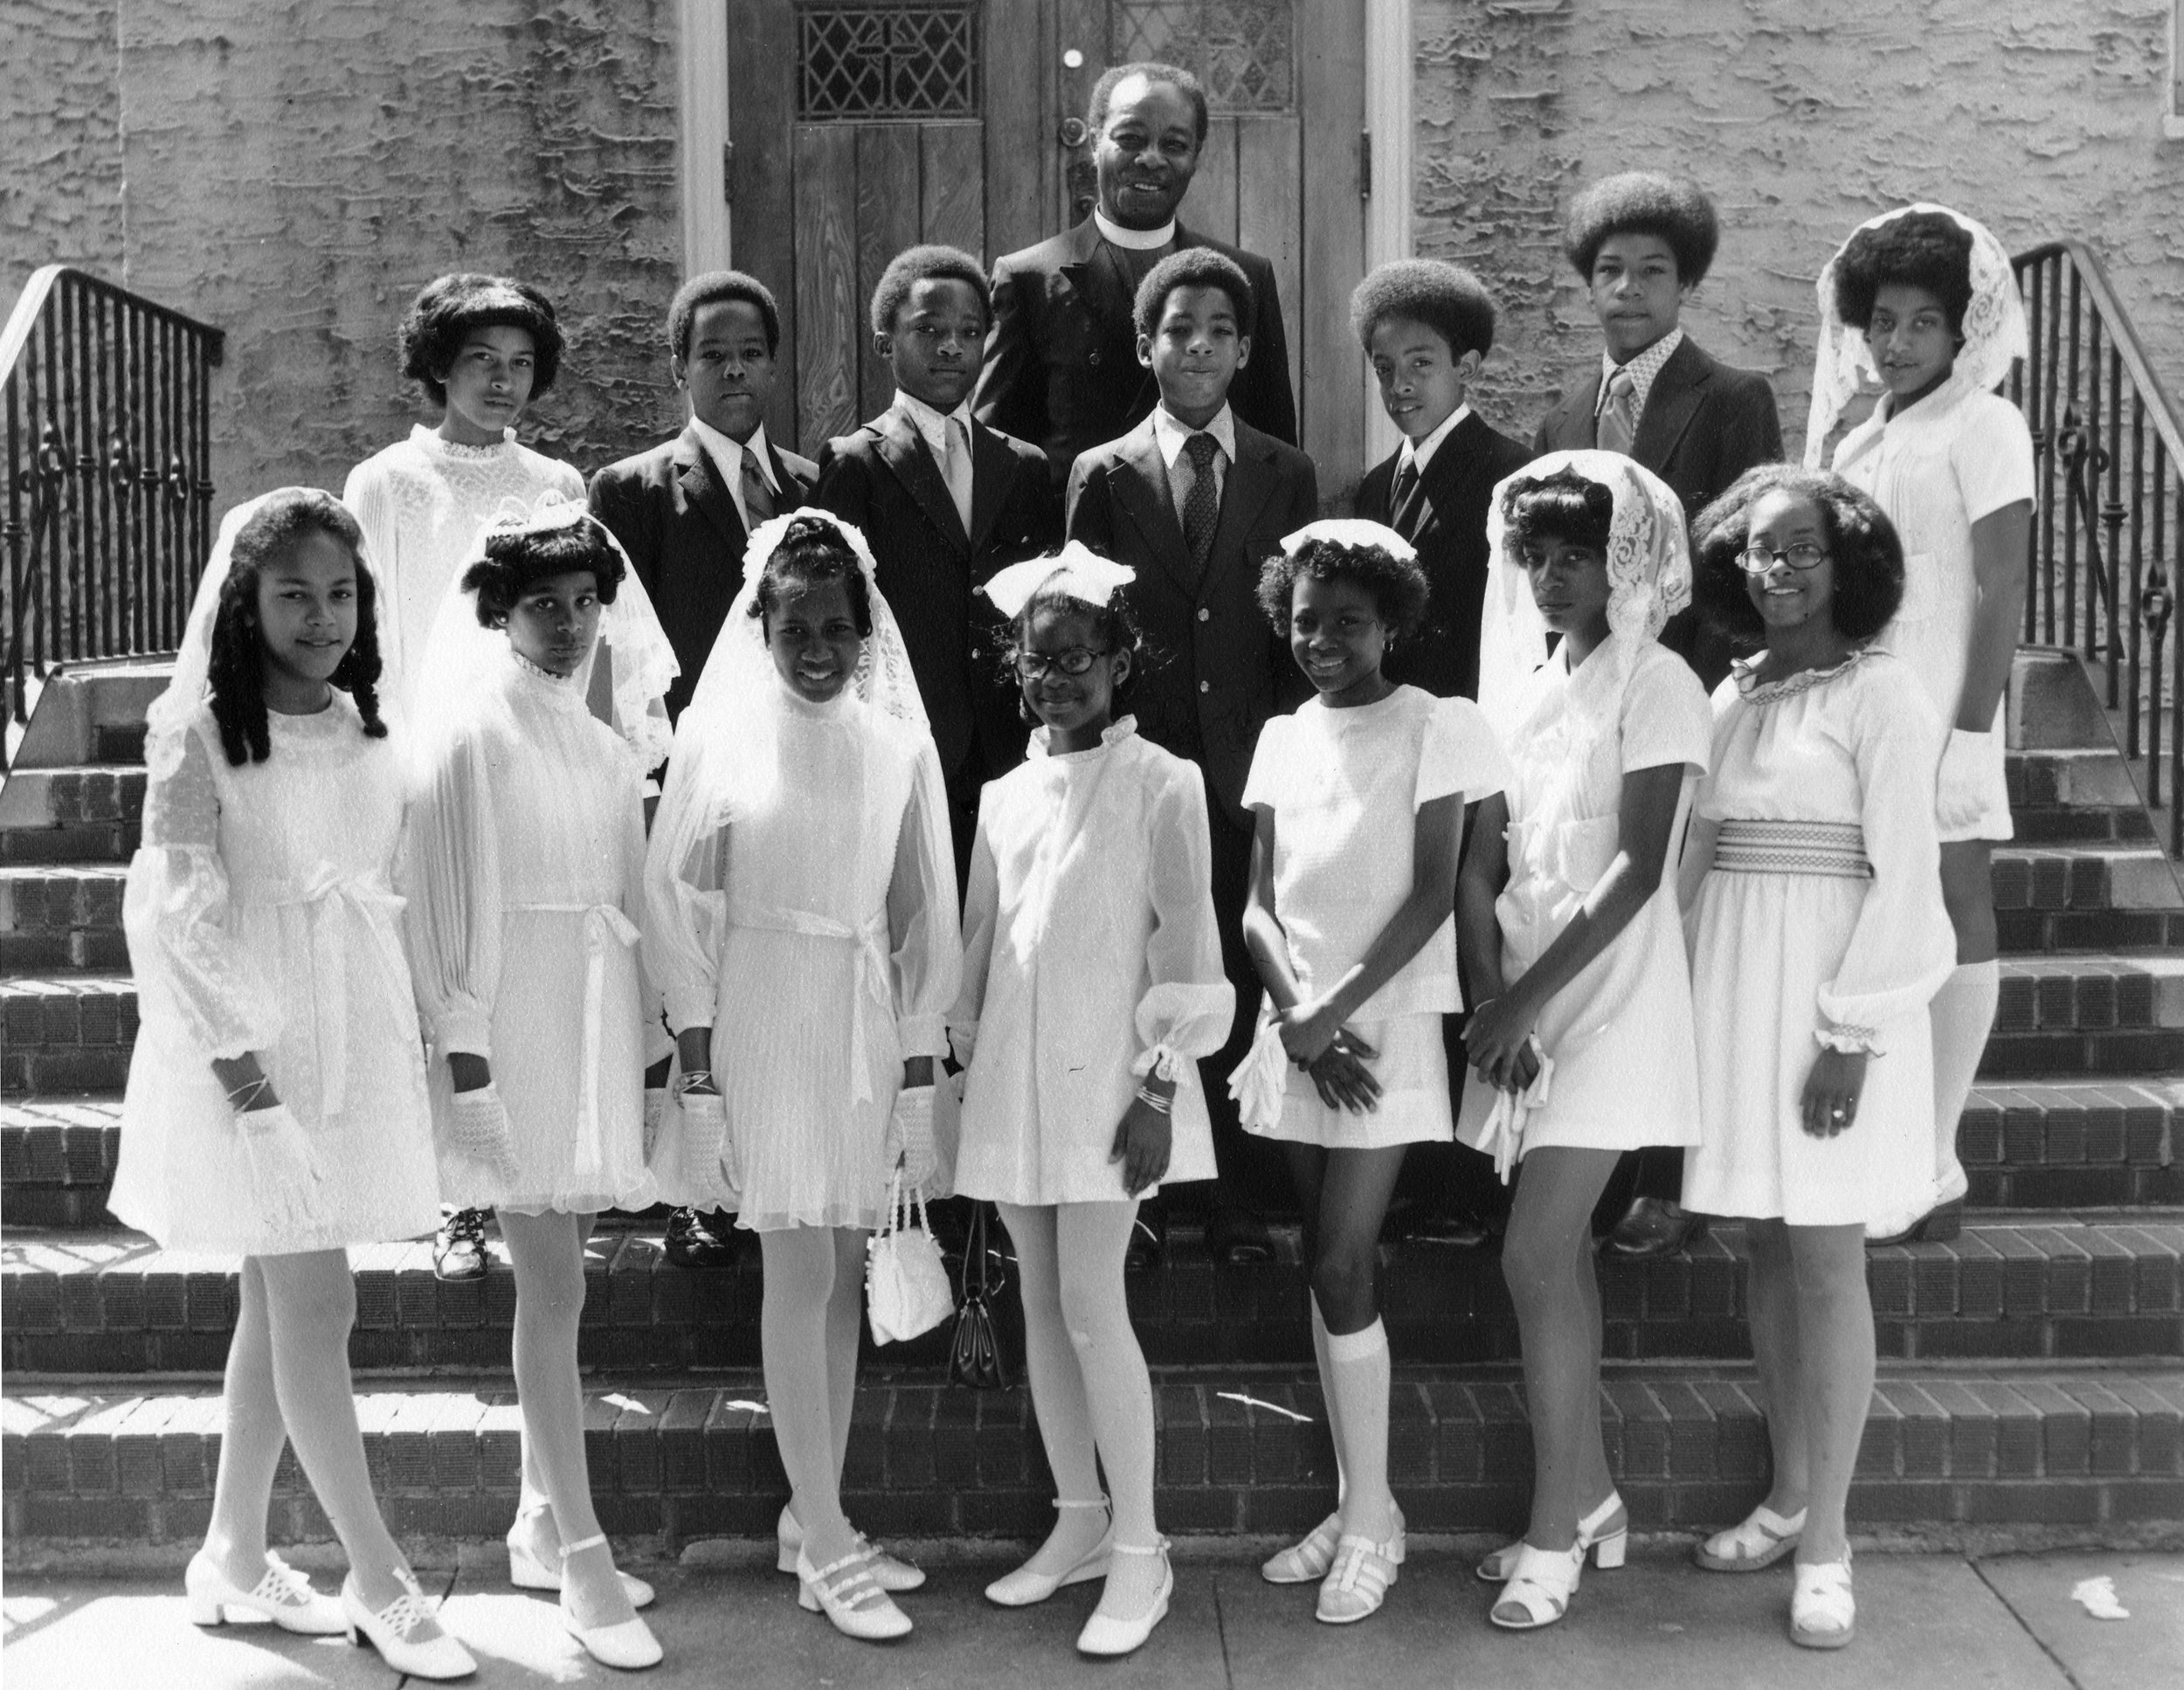 Rev. L. Charles Gray with Confirmation Class of 1970